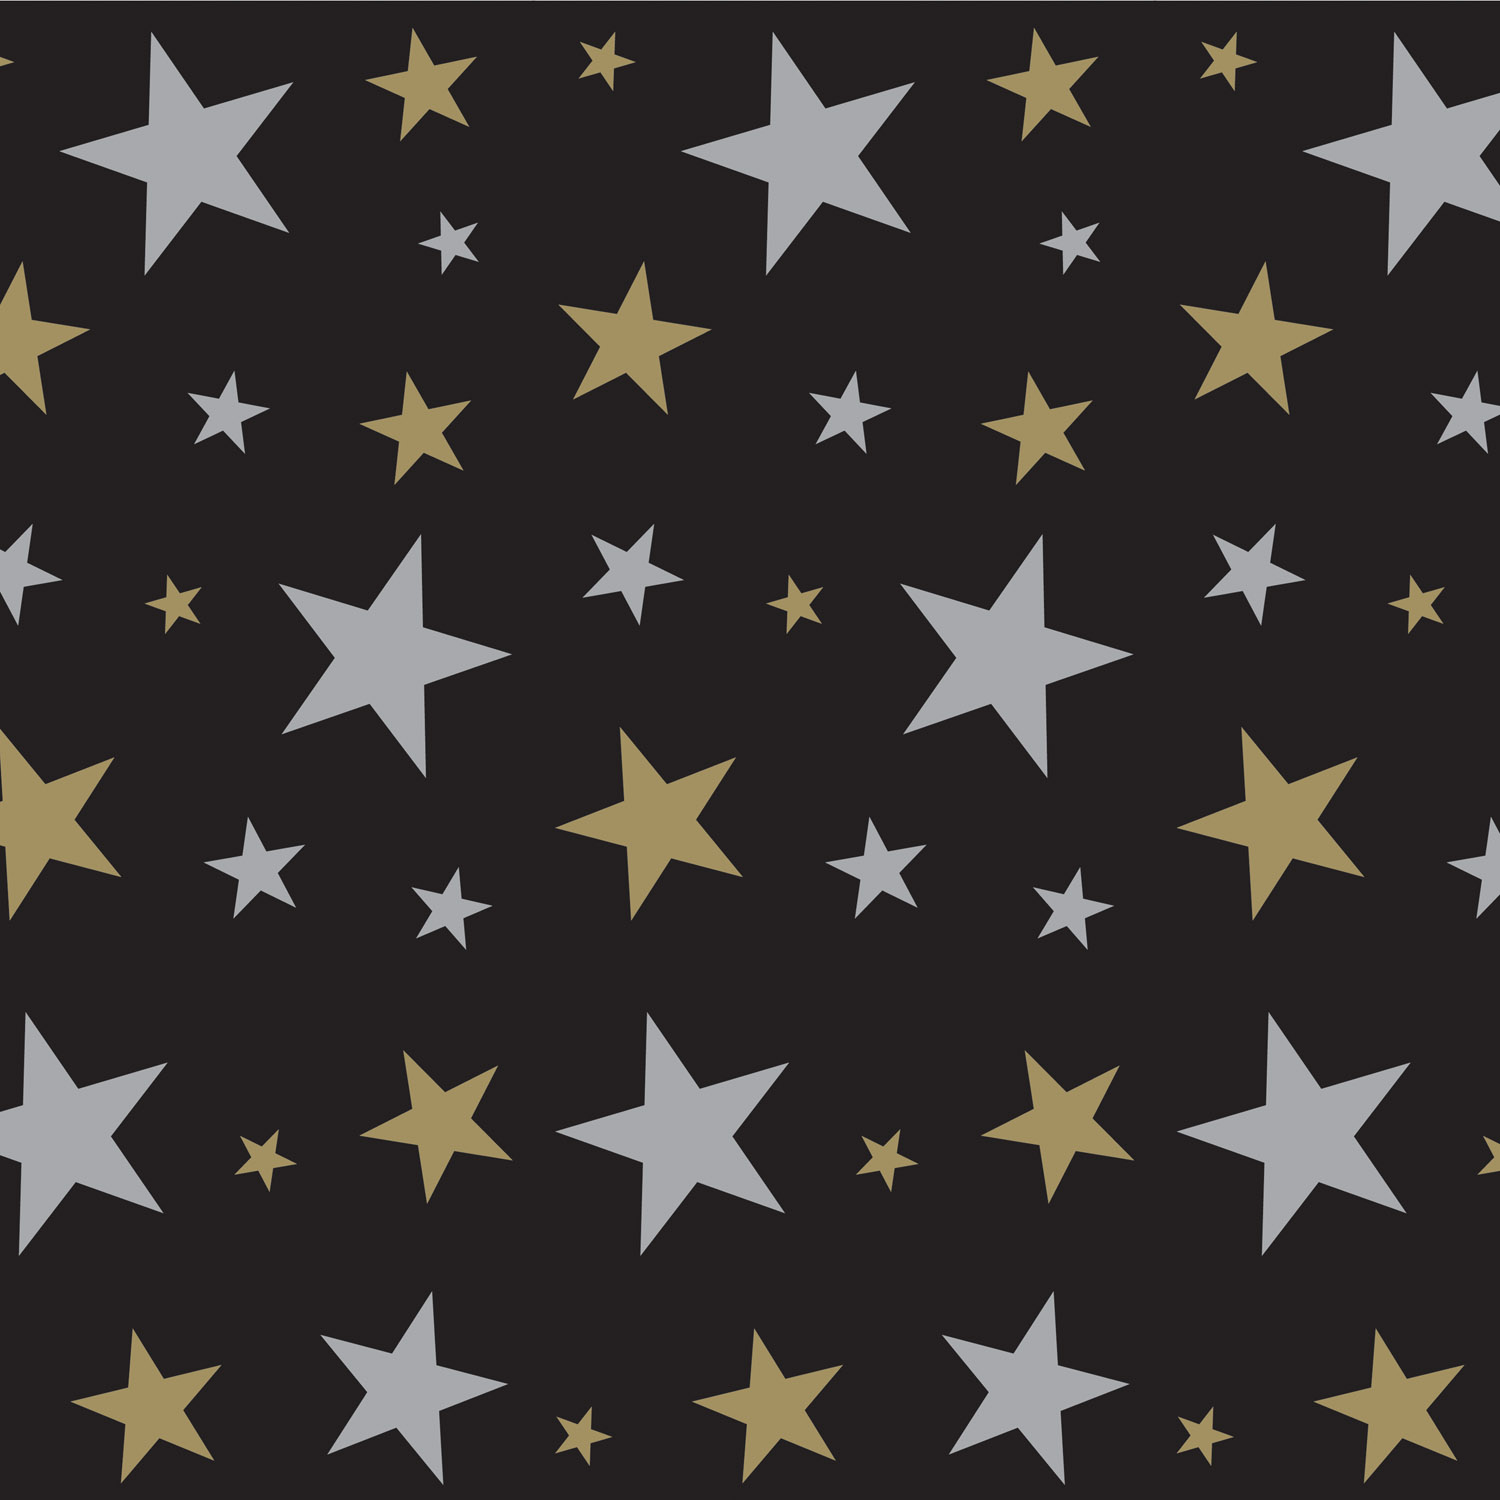 Black plastic photo backdrop with silver and gold stars